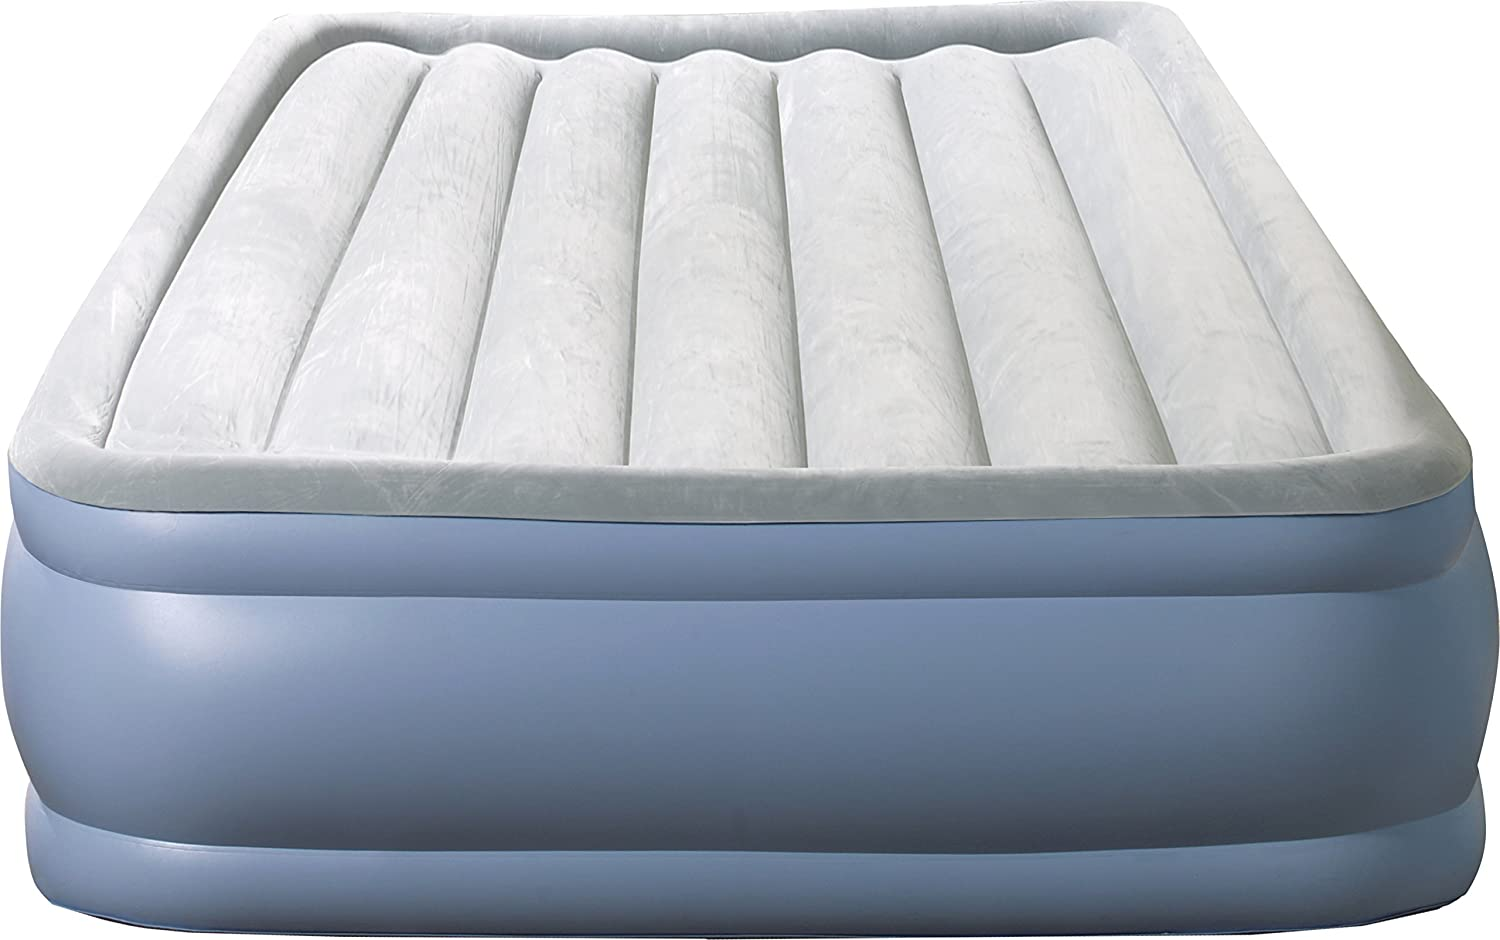 Beautyrest Hi-Loft Inflatable Mattress: Raised-Profile Air Bed with External Pump, Full : Everything Else